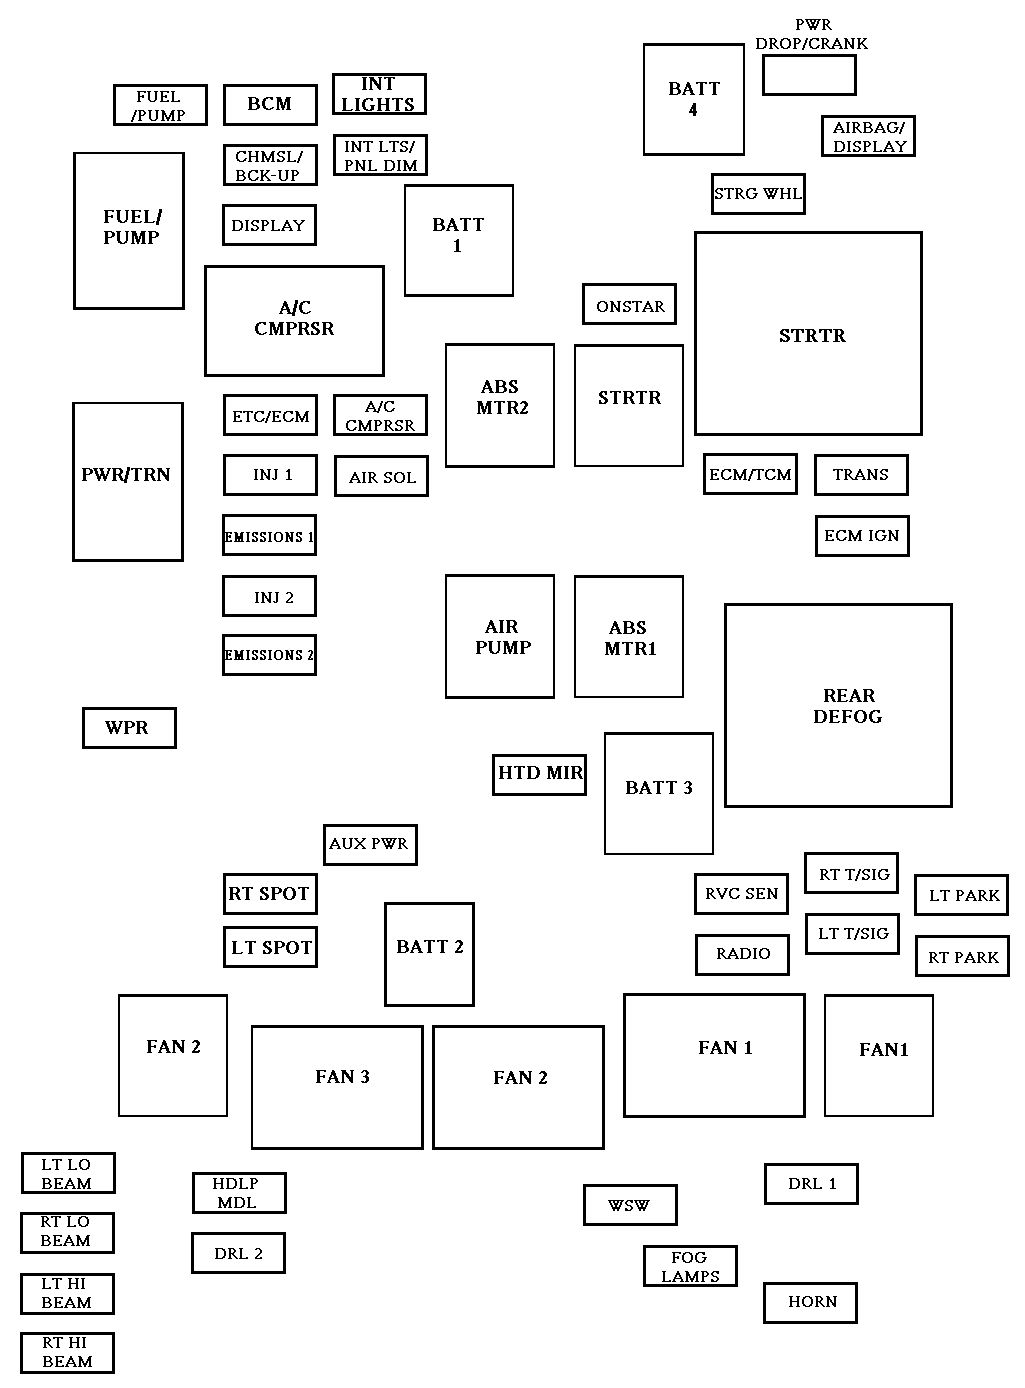 1964 impala ss fuse box diagram chevrolet impala mk9 (ninth generation) 2006 - 2014 -fuse ... 2008 impala ss fuse block diagram